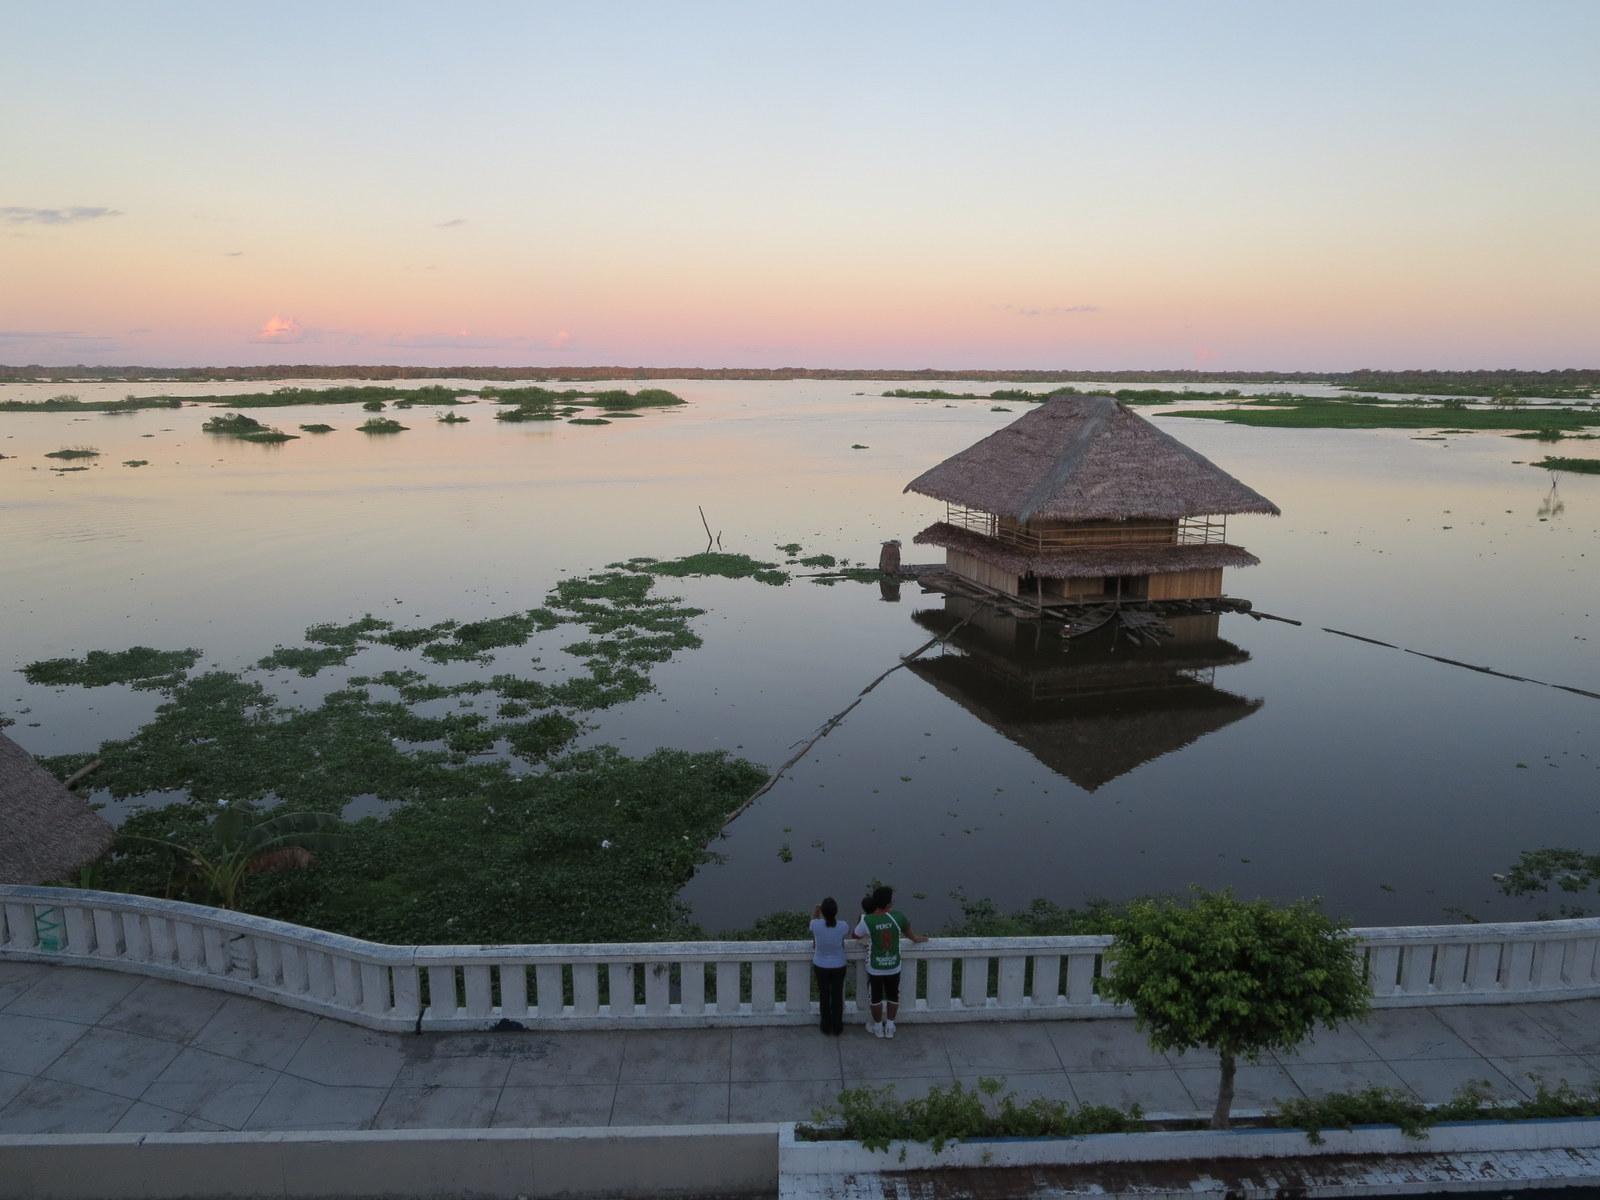 The river from Iquitos